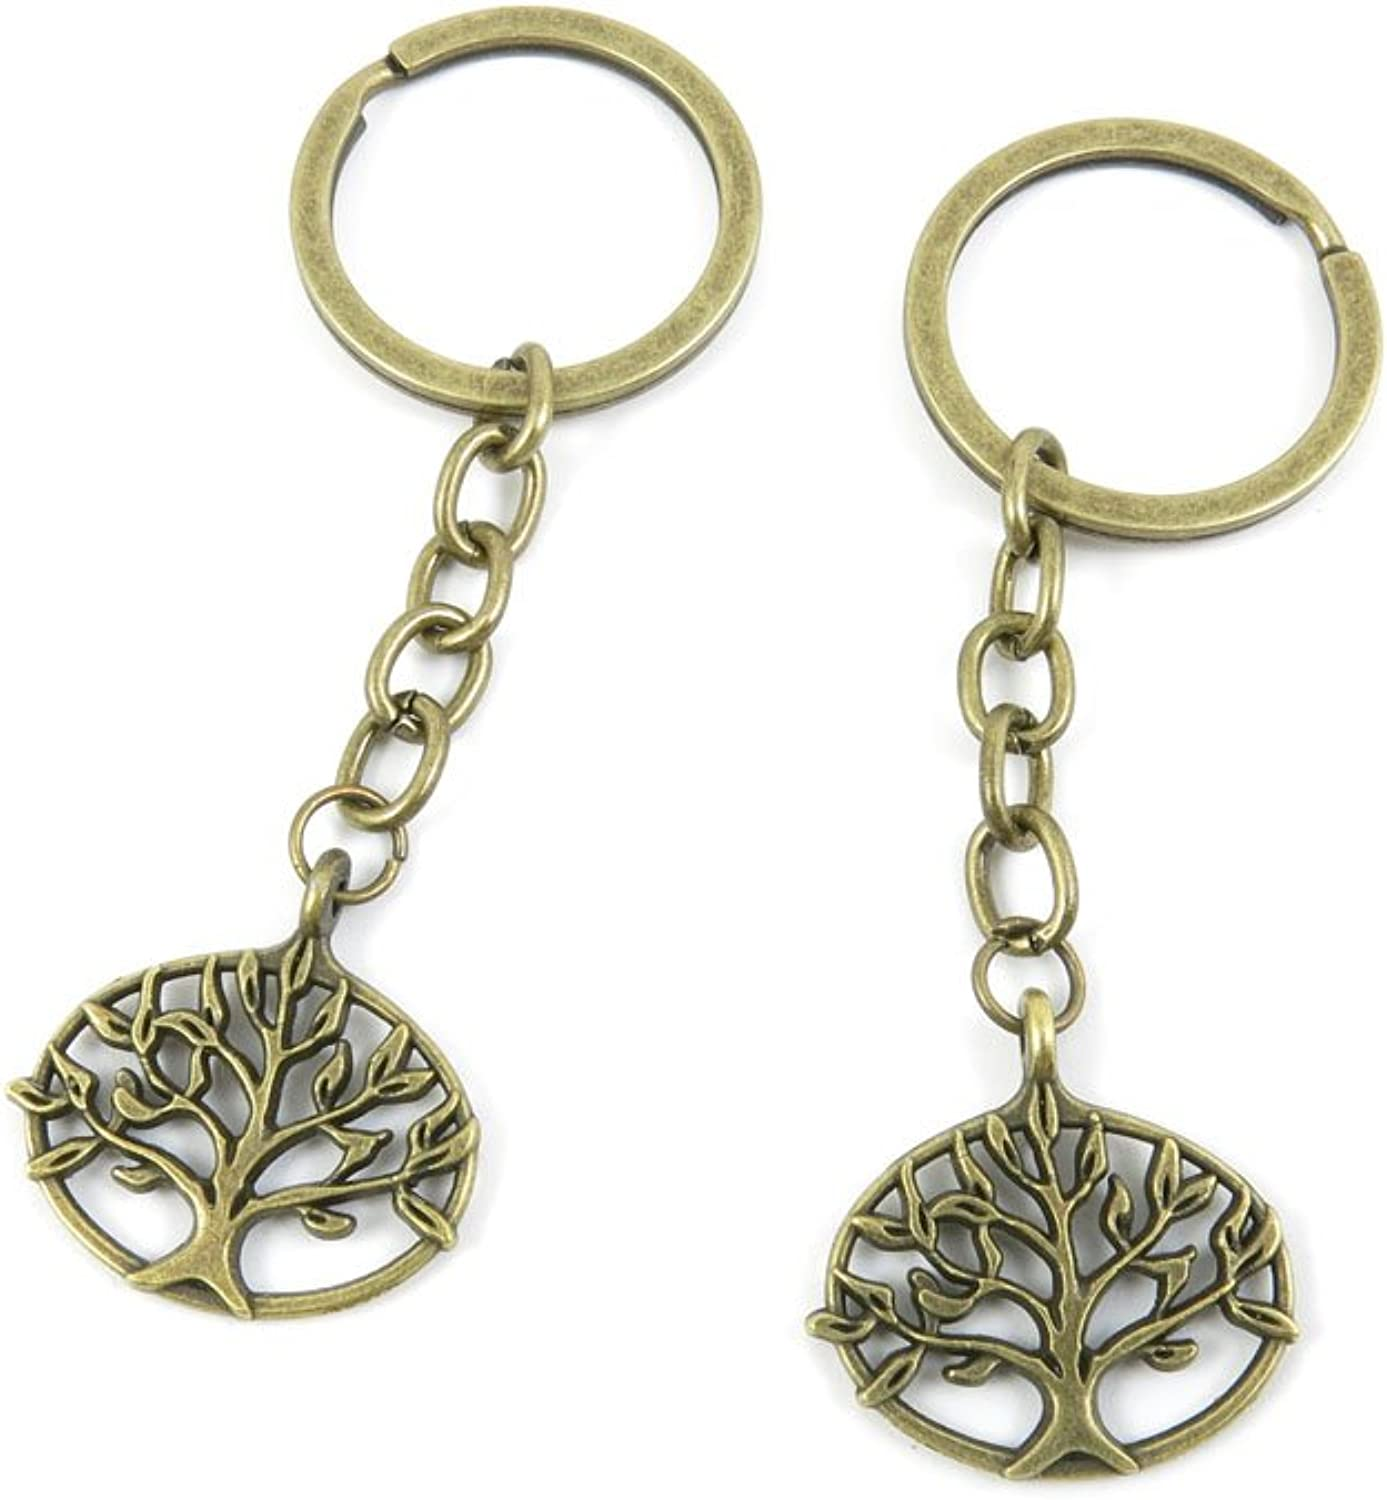 100 PCS Keyrings Keychains Key Ring Chains Tags Jewelry Findings Clasps Buckles Supplies X2RK0 Tree Oak